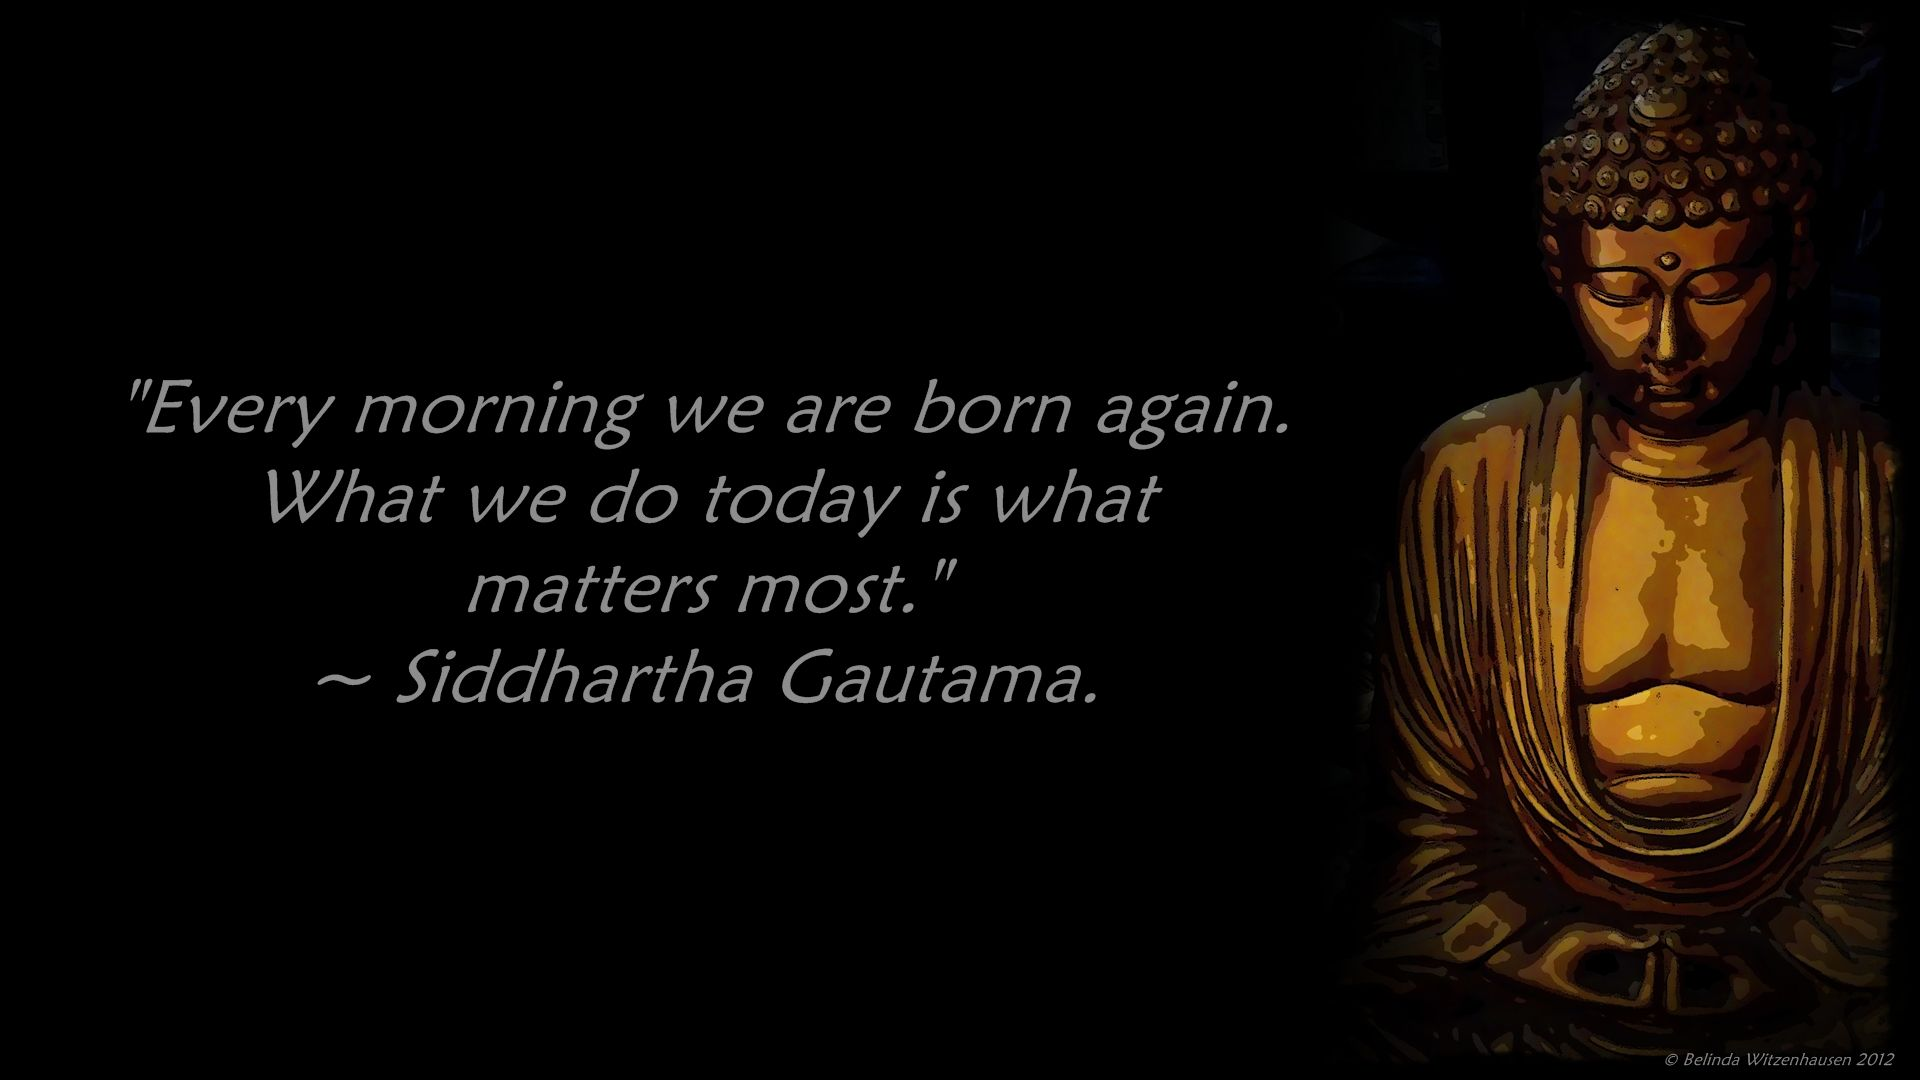 best images about wisdom wisdom quotes wise 17 best images about wisdom wisdom quotes wise quotes and gautama buddha